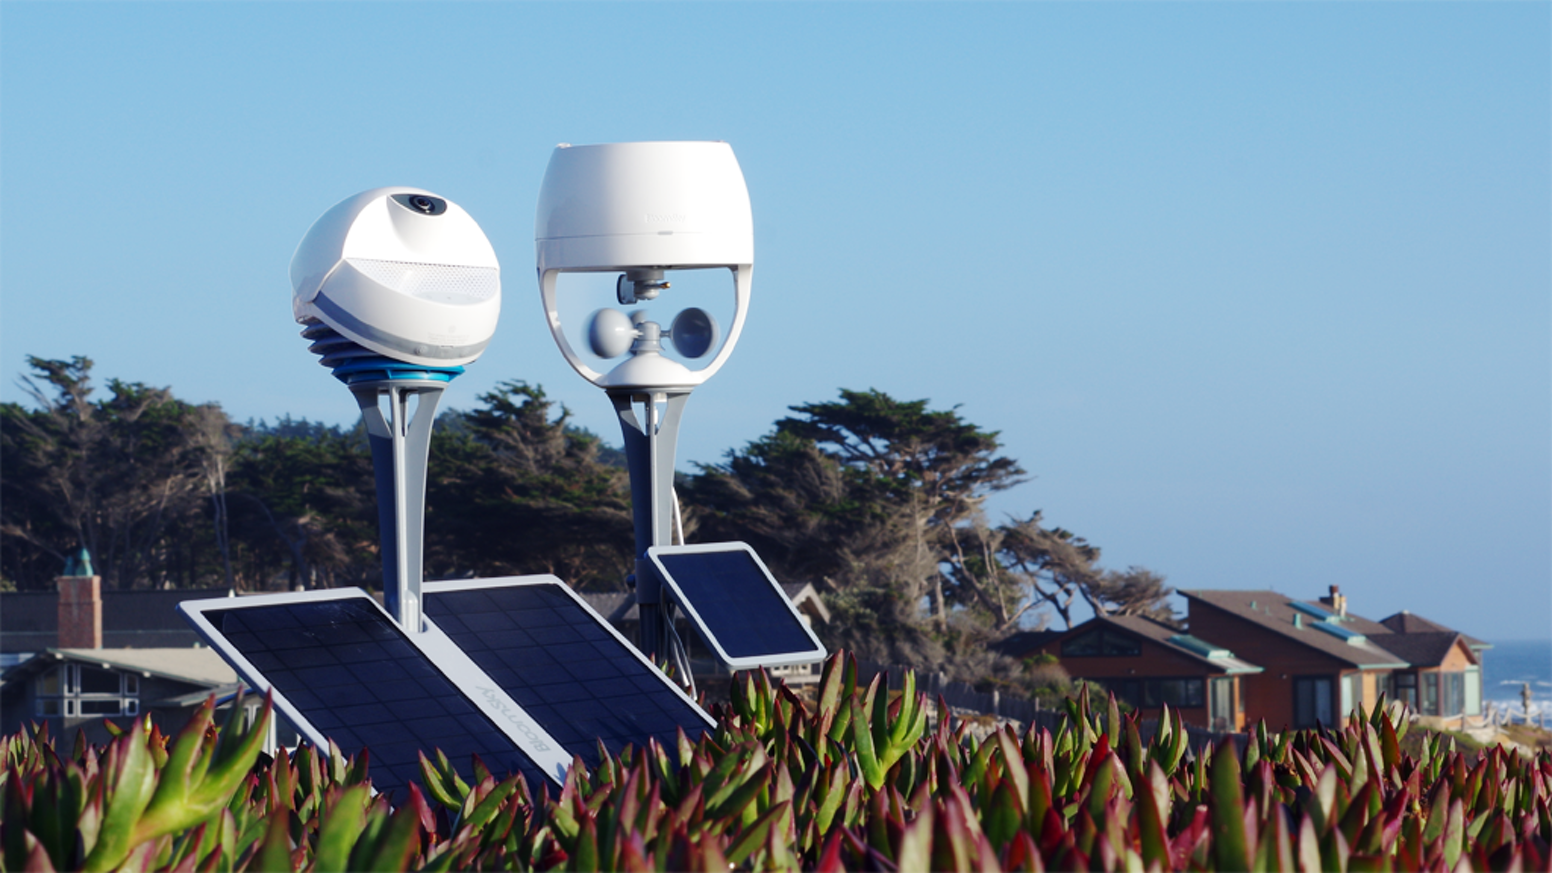 The world's first community-based smart weather camera station with real-time images, time-lapse and precise weather data.